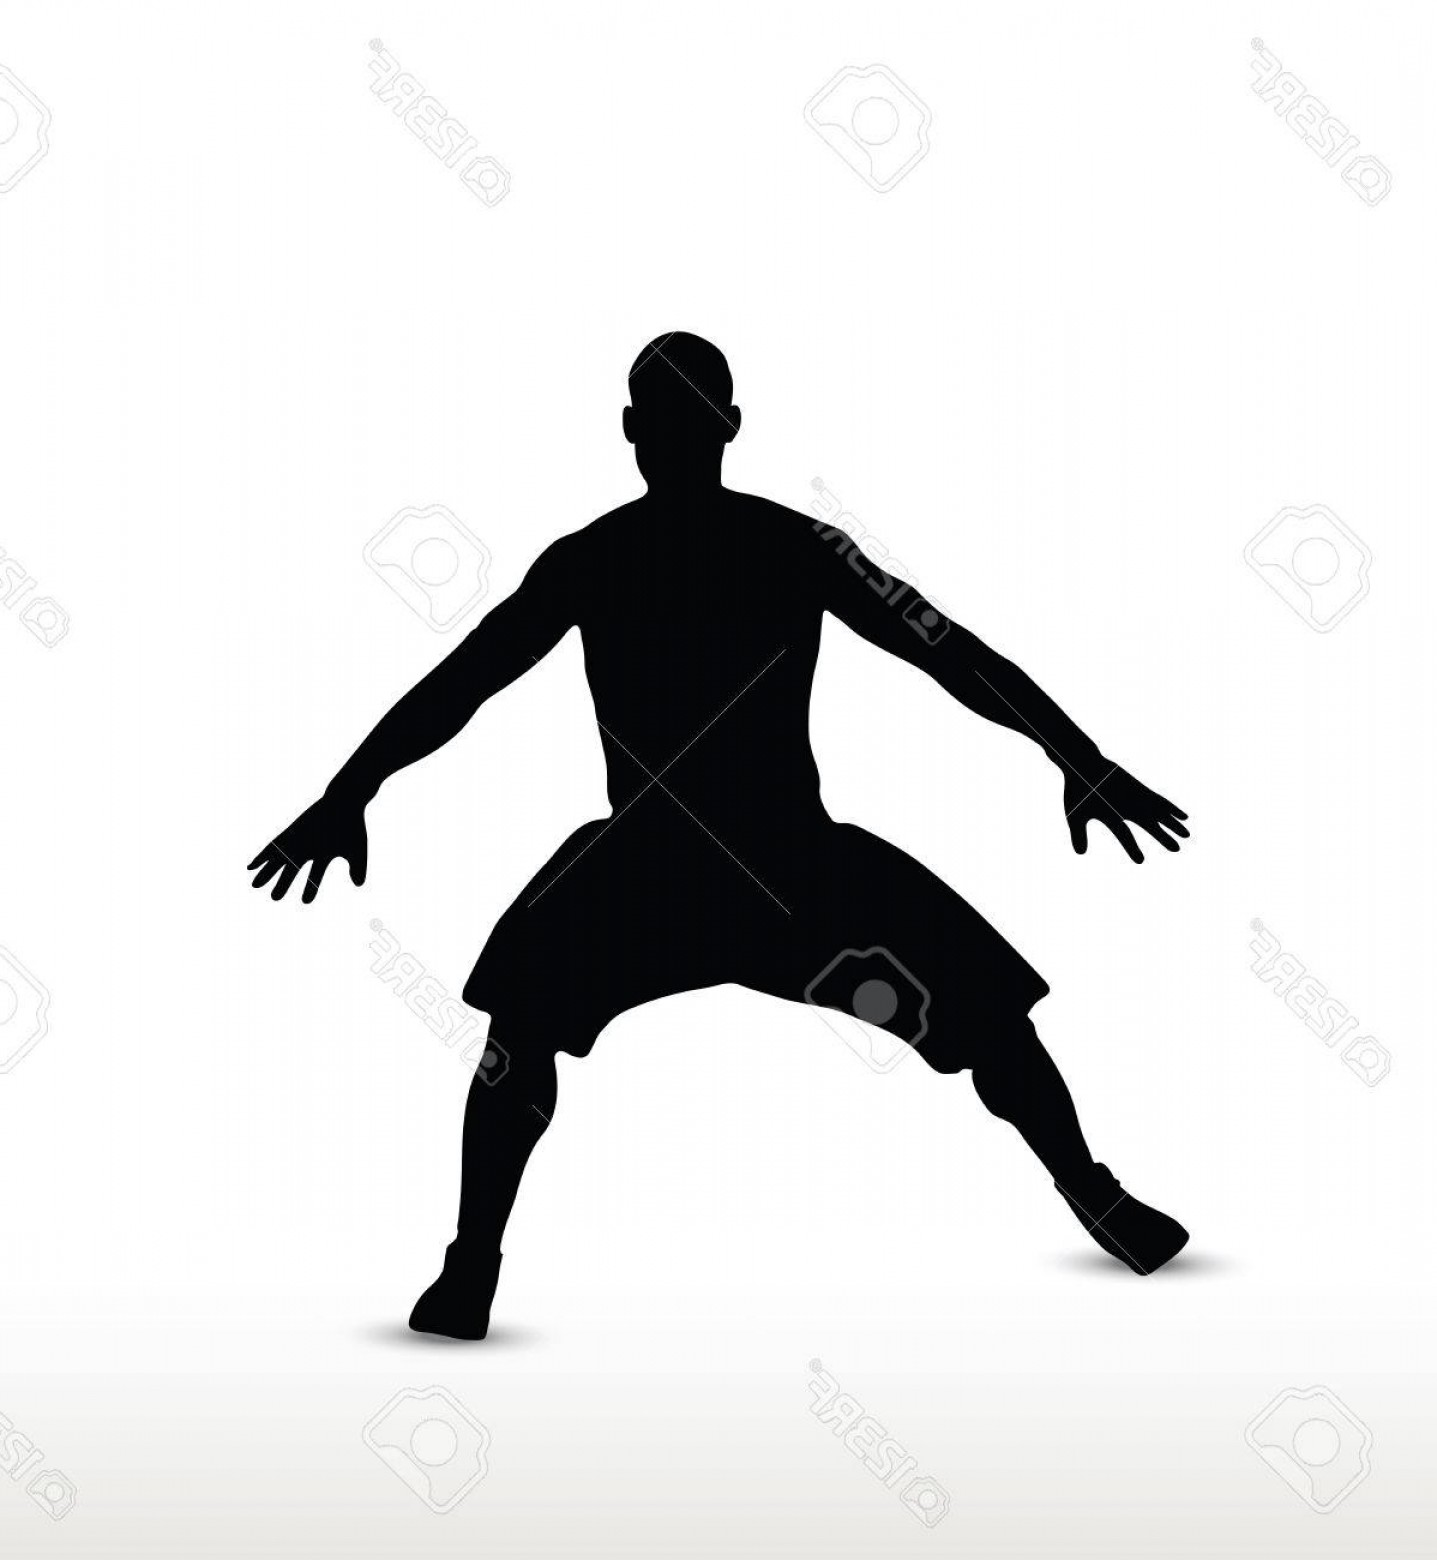 Defensive Football Player Silhouette Vector.